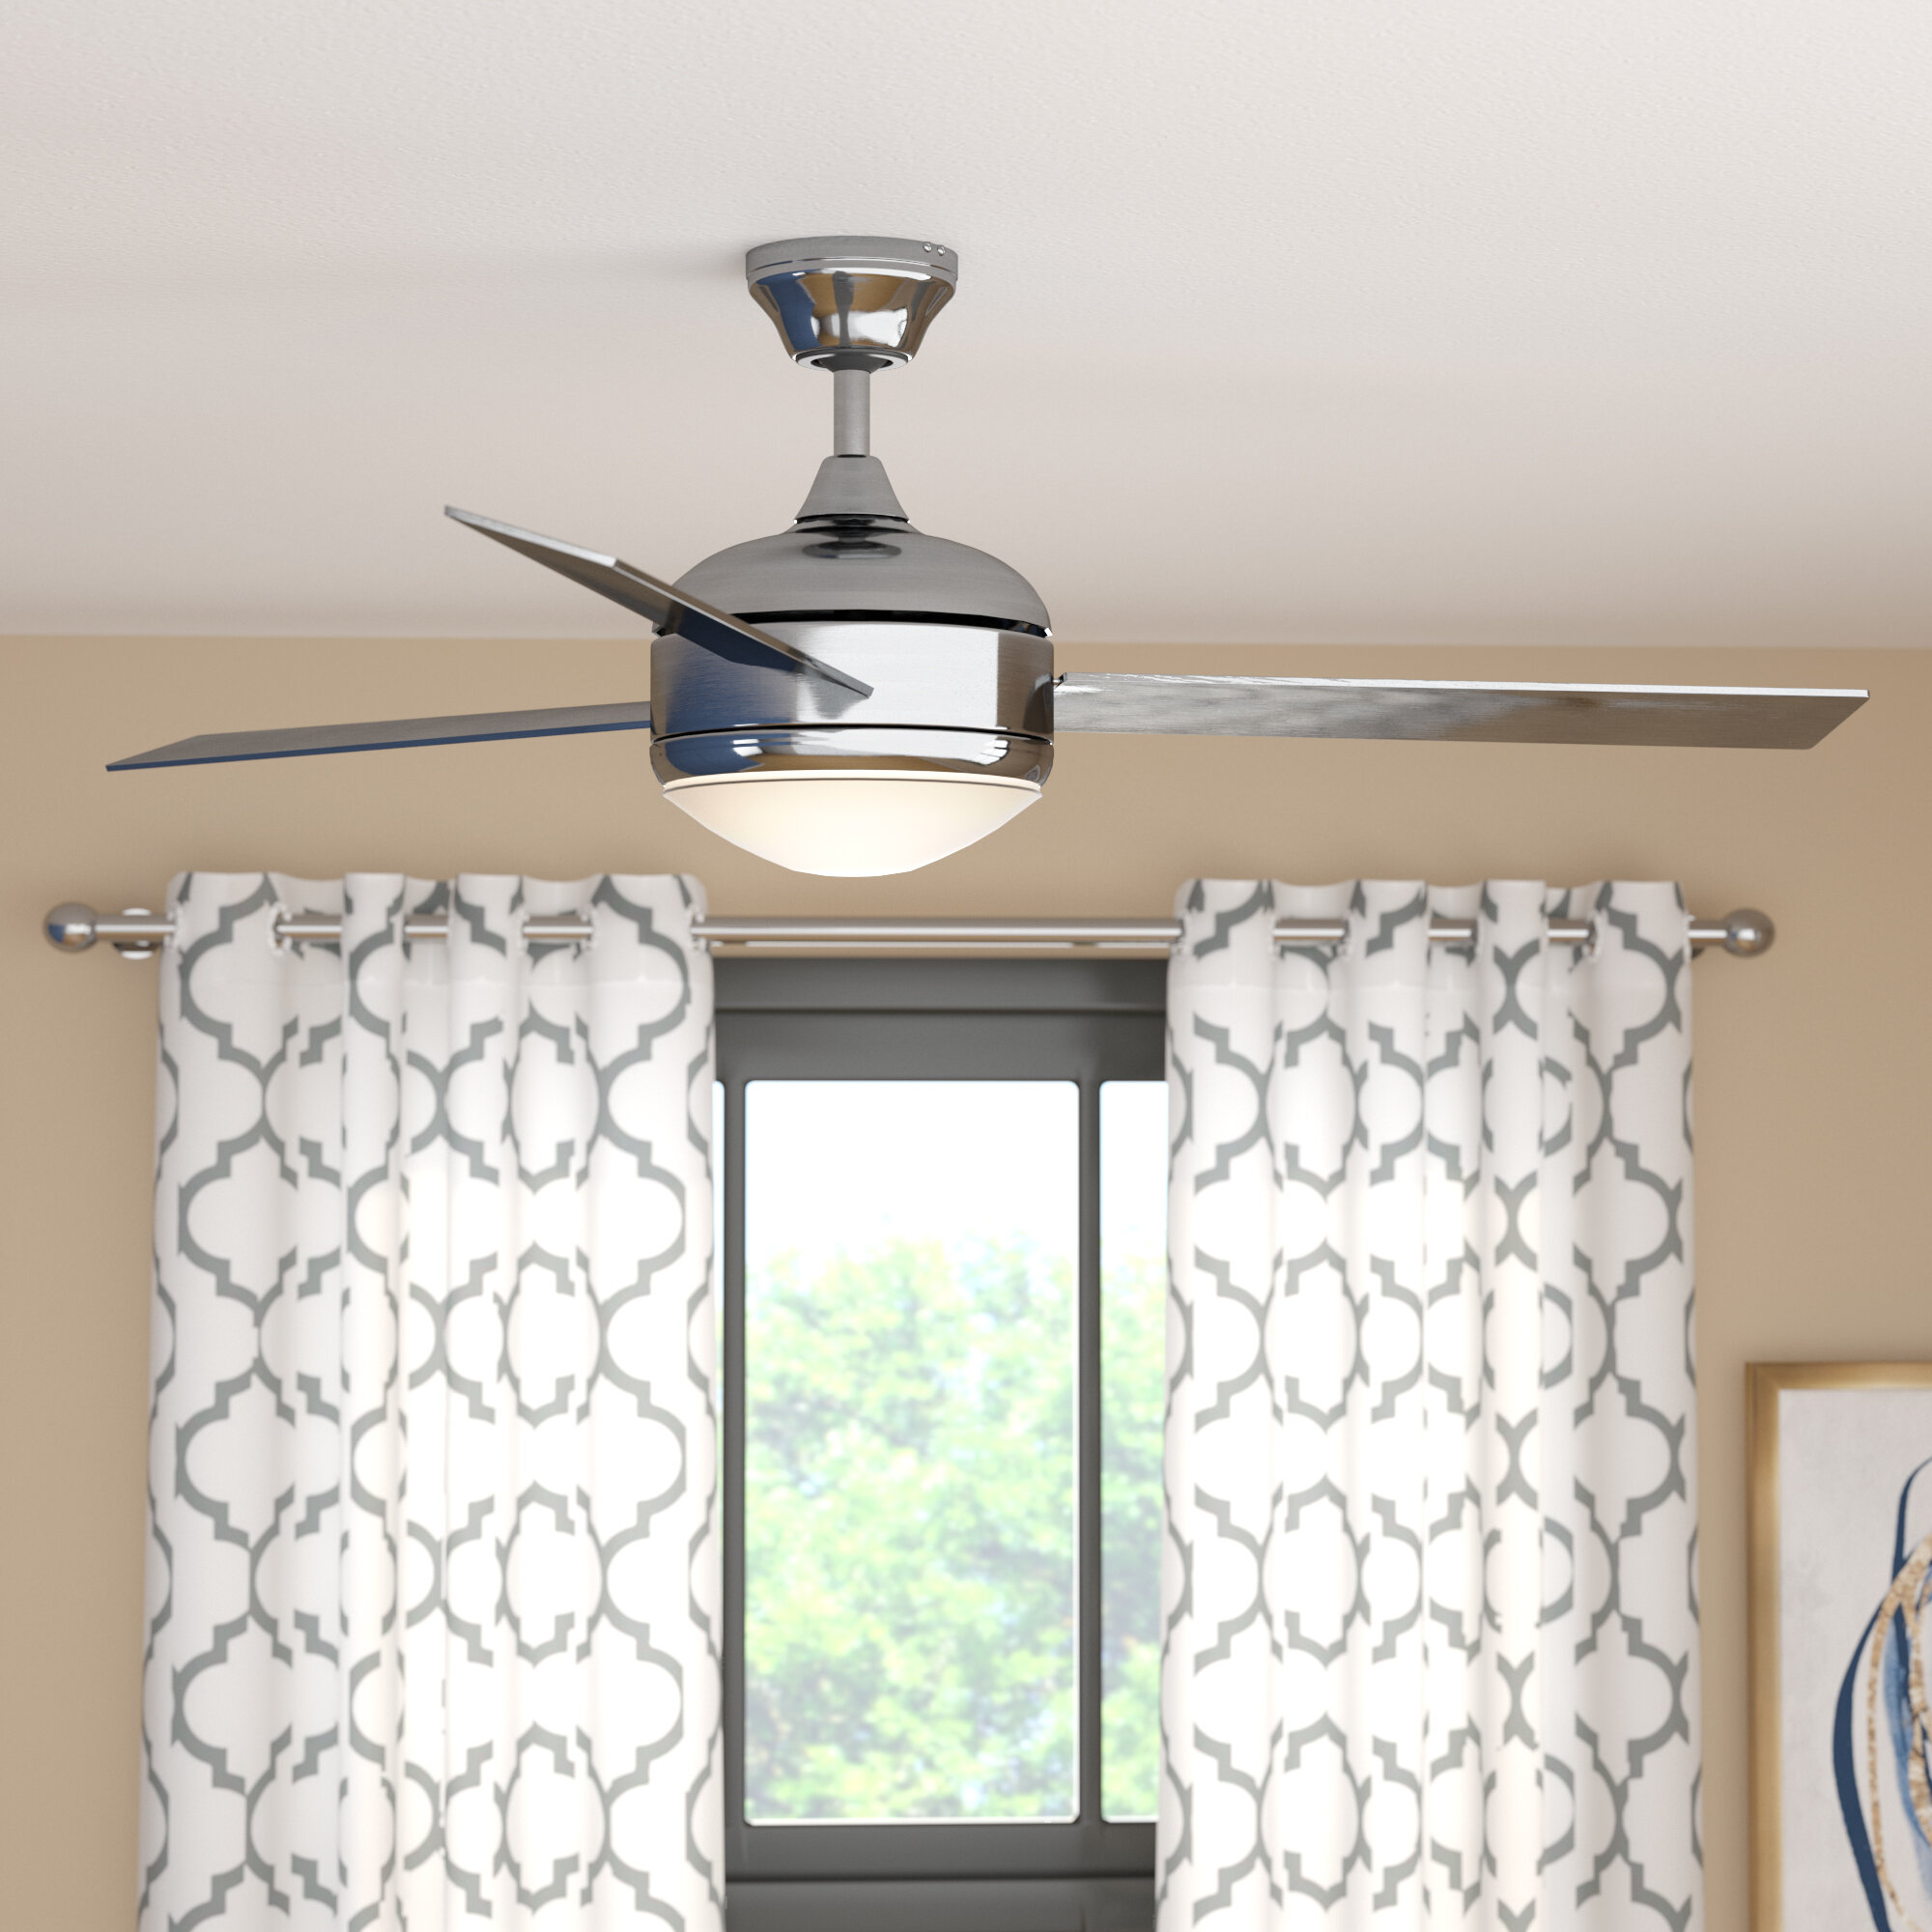 fan bladeless sleeper for incredible lights in profile exciting the light outdoor ceilings interesting low flush most mount home fans with twin ceiling design hugger and cool